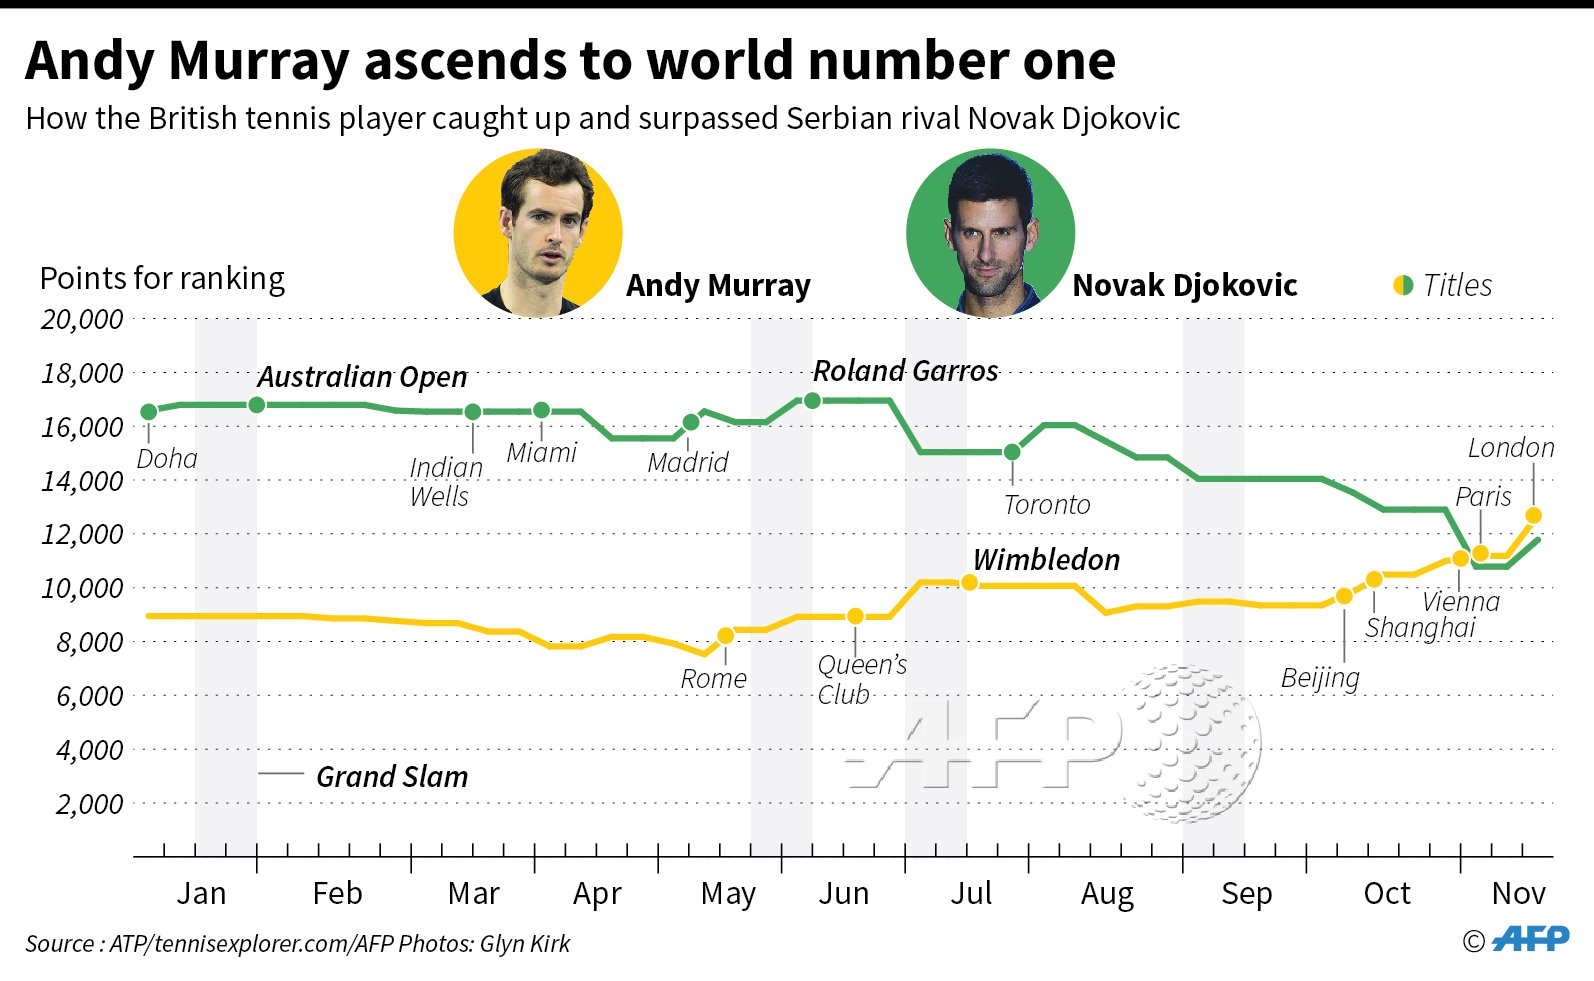 When Andy Murray surpassed Novak Djokovic